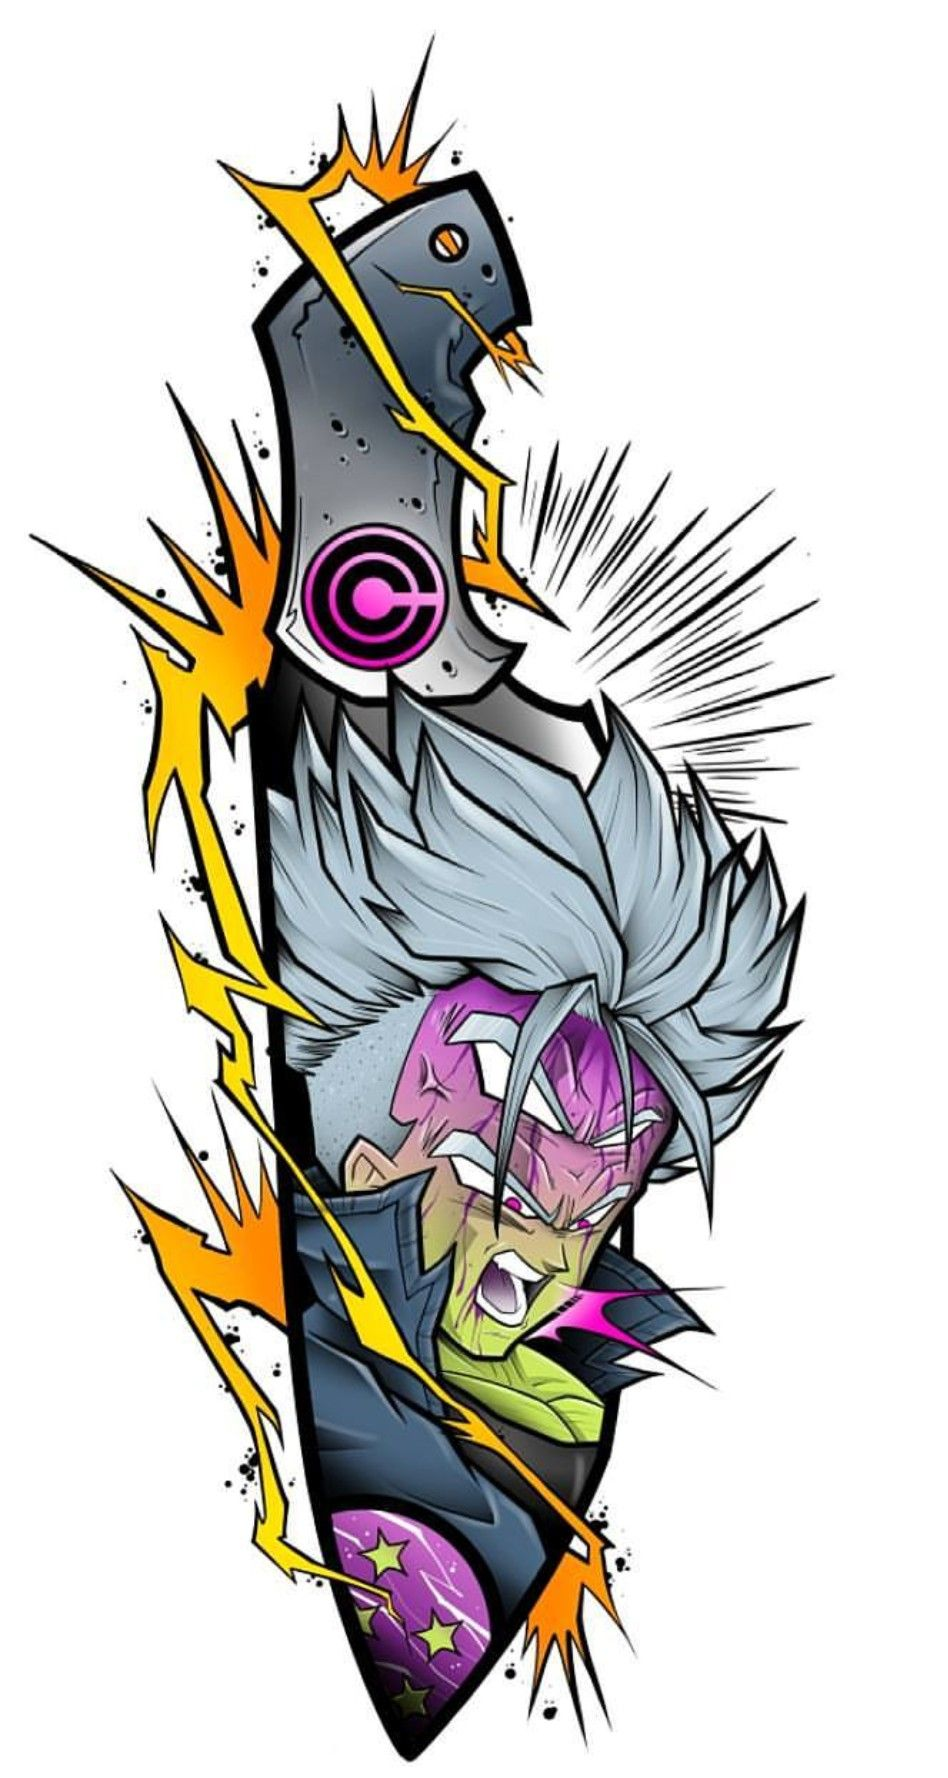 Future Trunks Dragon Ball Z Dragon Ball Artwork Dragon Ball Tattoo Dragon Ball